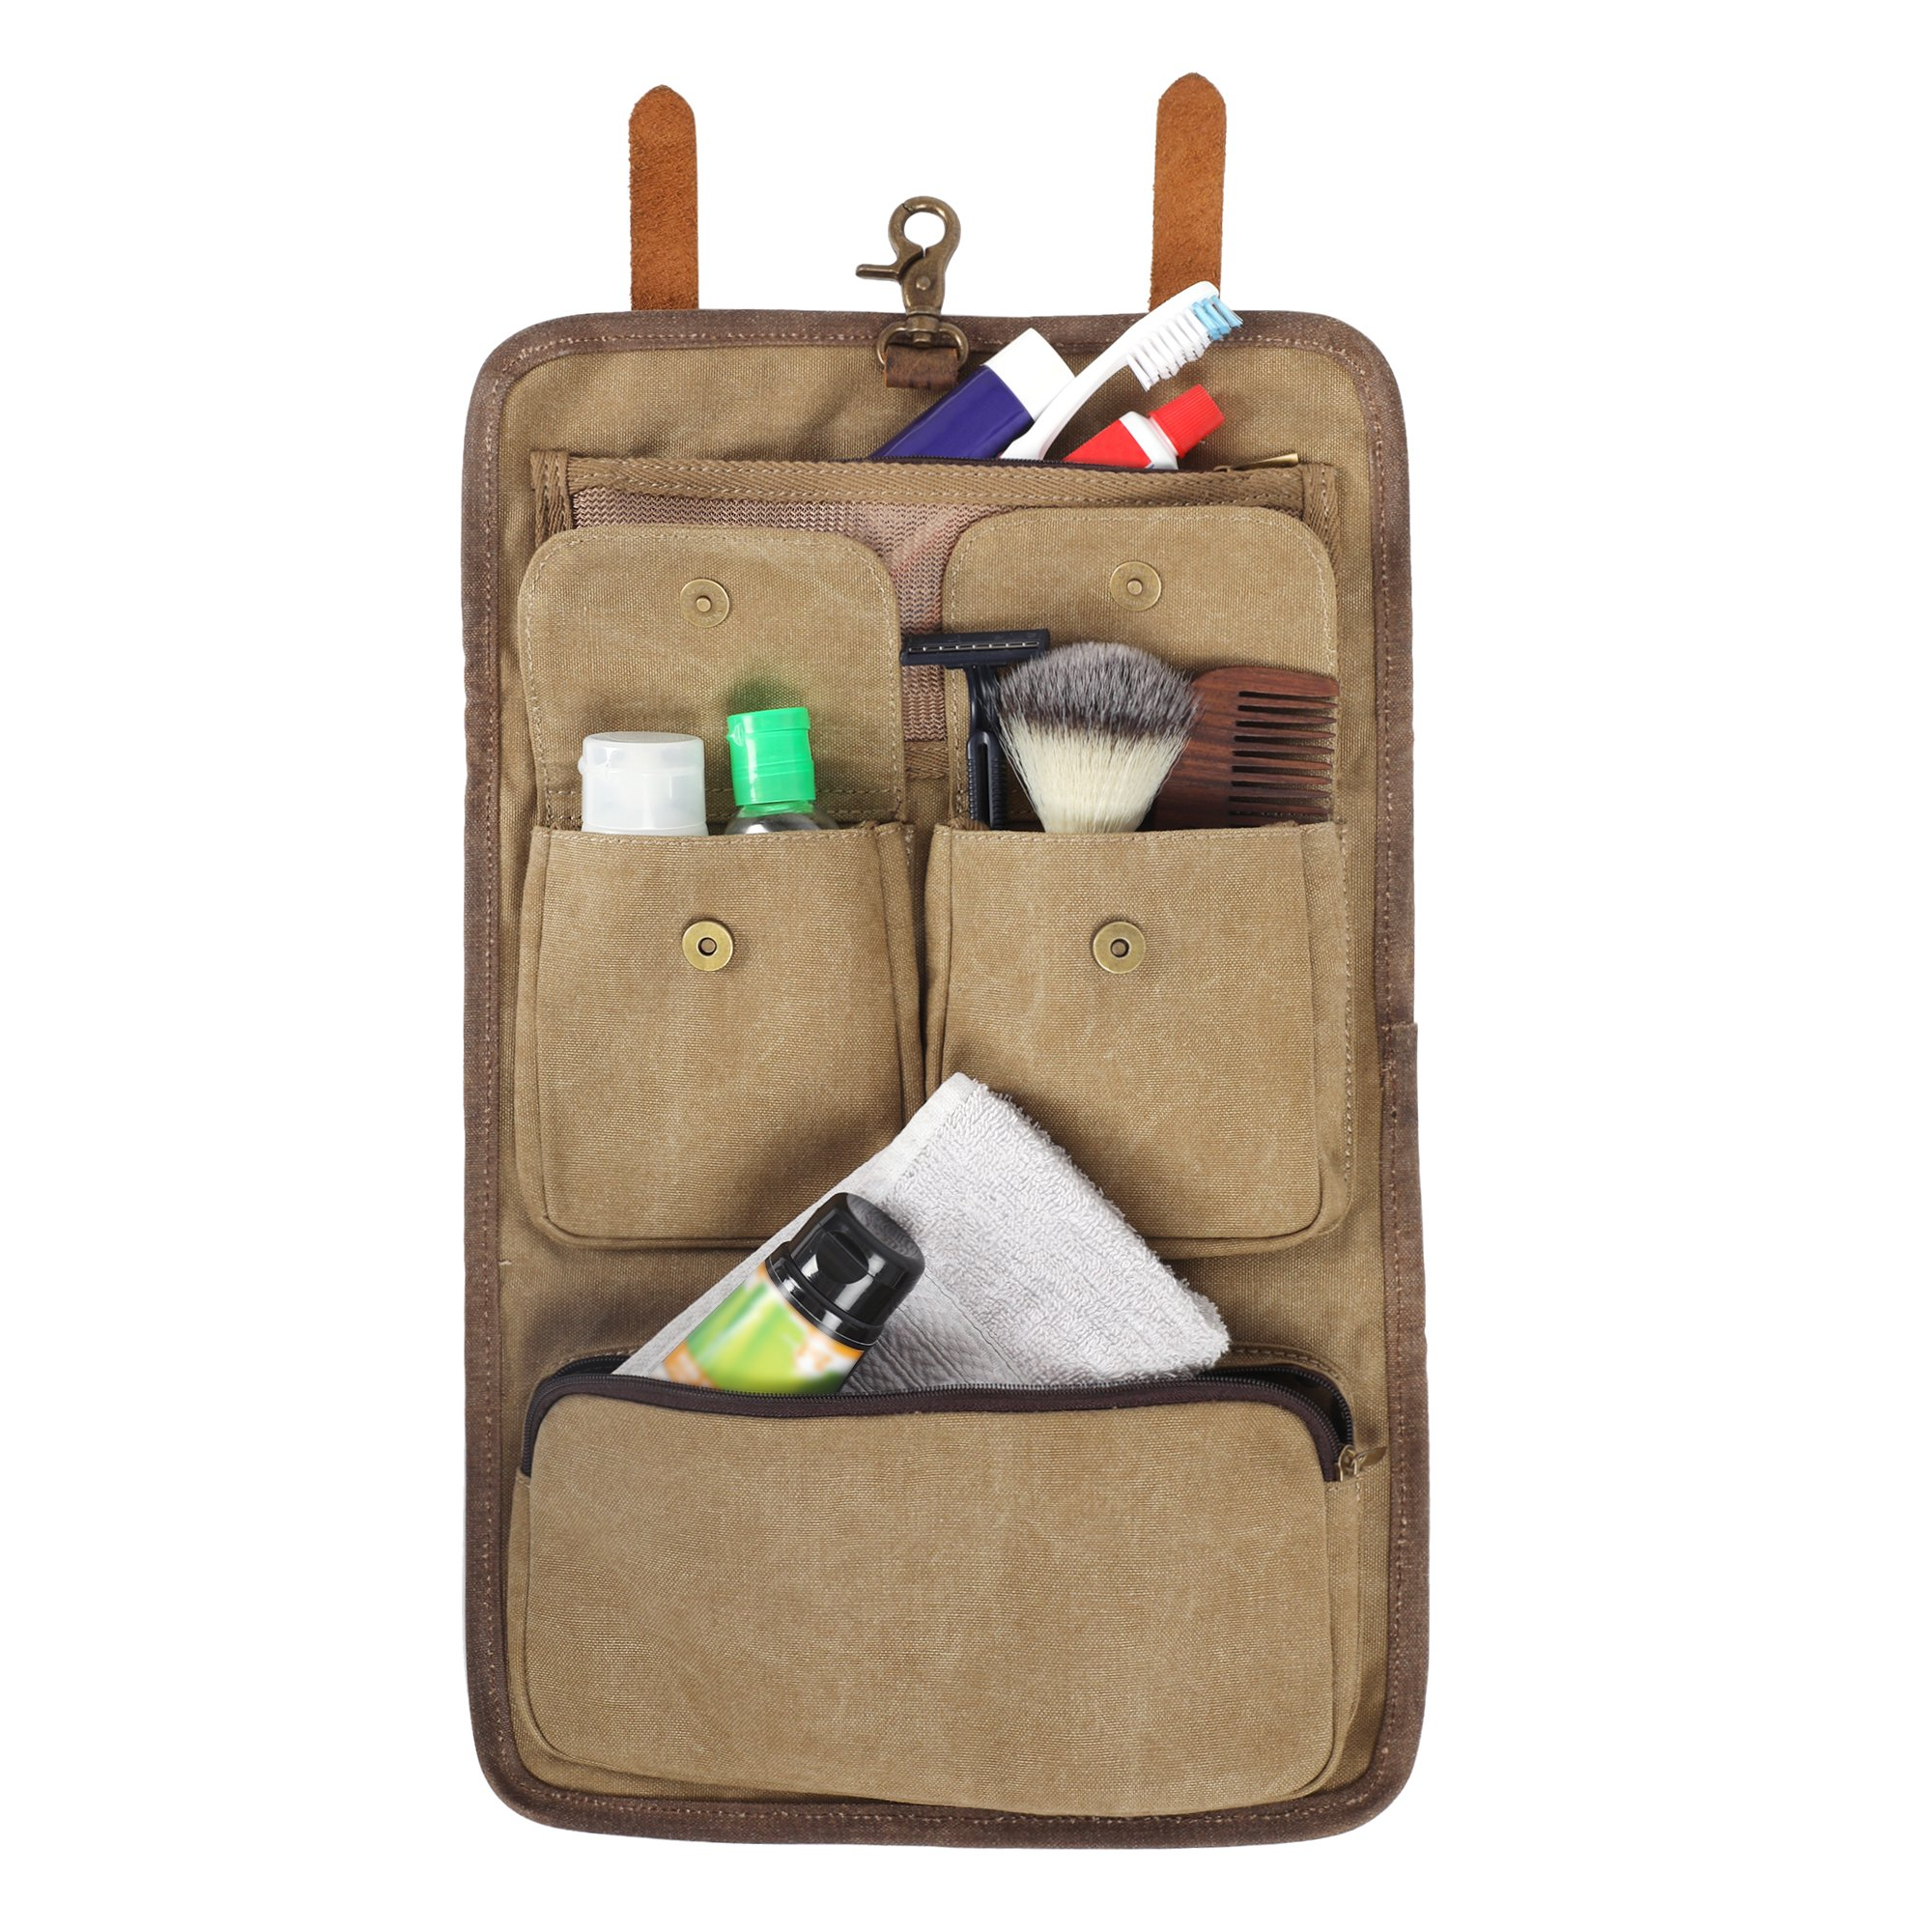 Hanging Canvas Leather Travel Toiletry Bag - Dopp Kit By Rustic Town